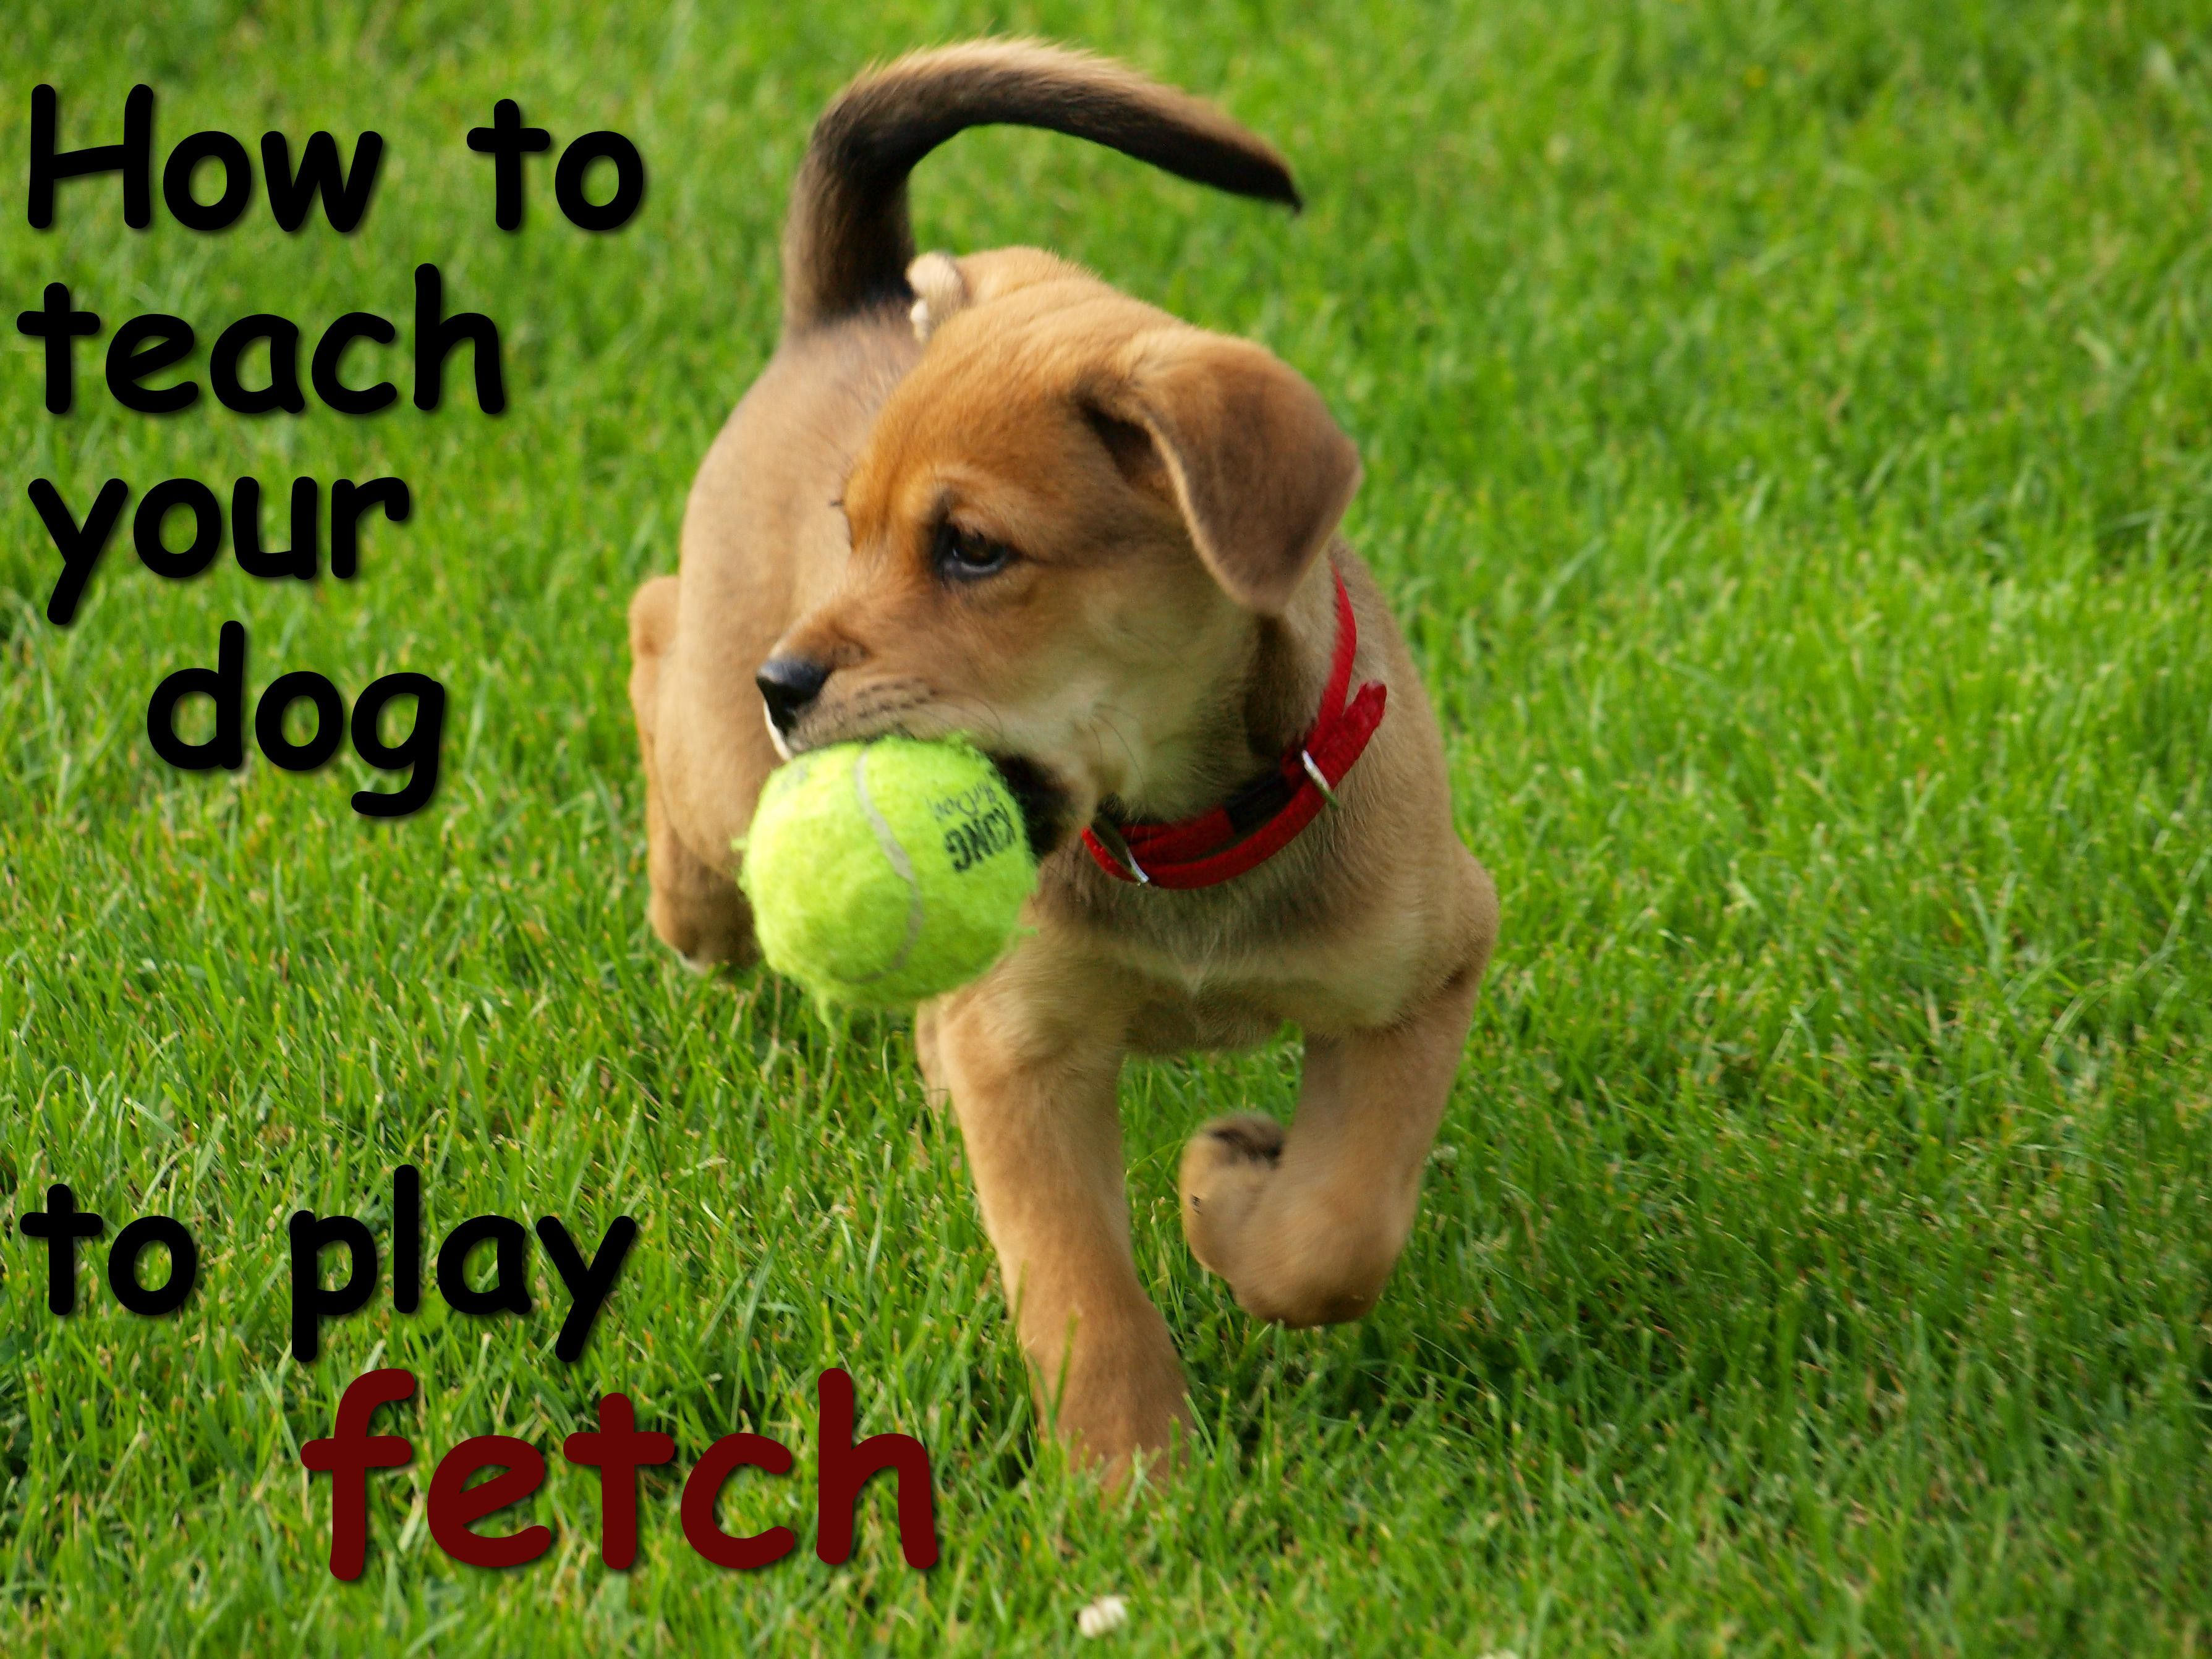 Tips On How To Teach Your Dog To Play Fetch Puppy Training Dog